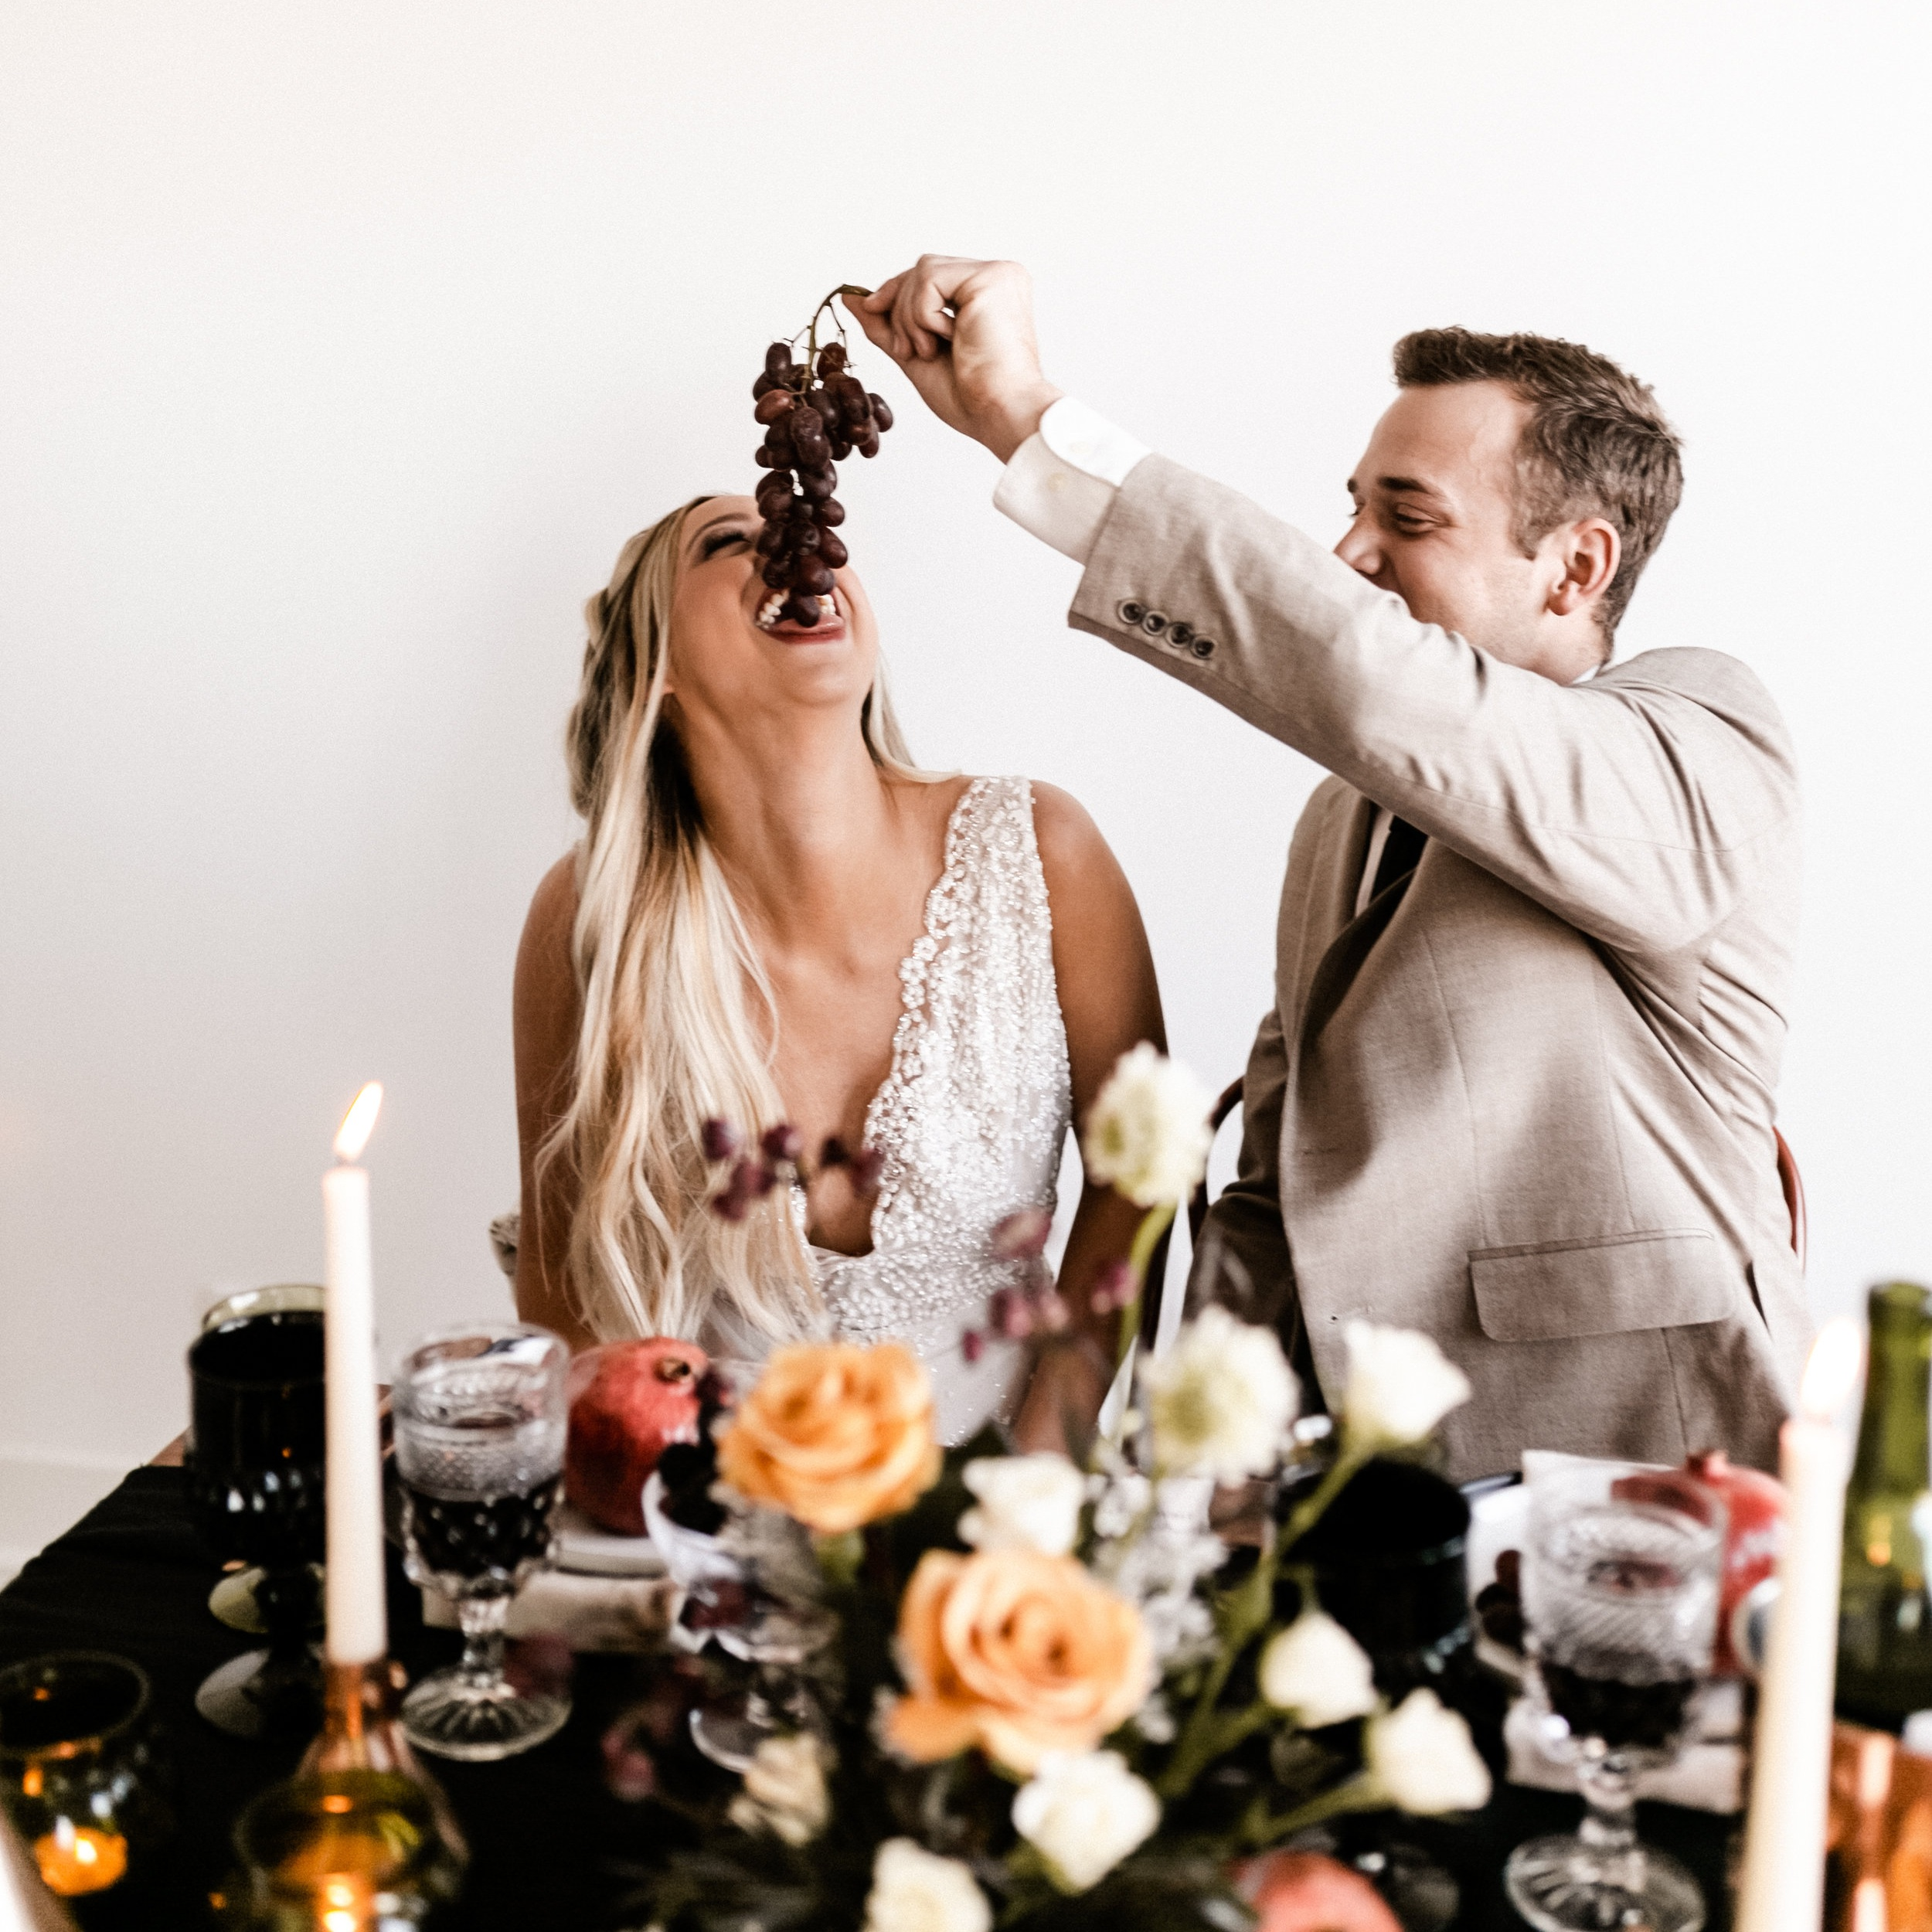 Testimonials - Weddings aren't just about beautiful photos. Weddings are about family, friends, and love sooooo this business is about YOU and it always will be. Come read for yourself what it is like to work with Kayley Haulmark Photography!